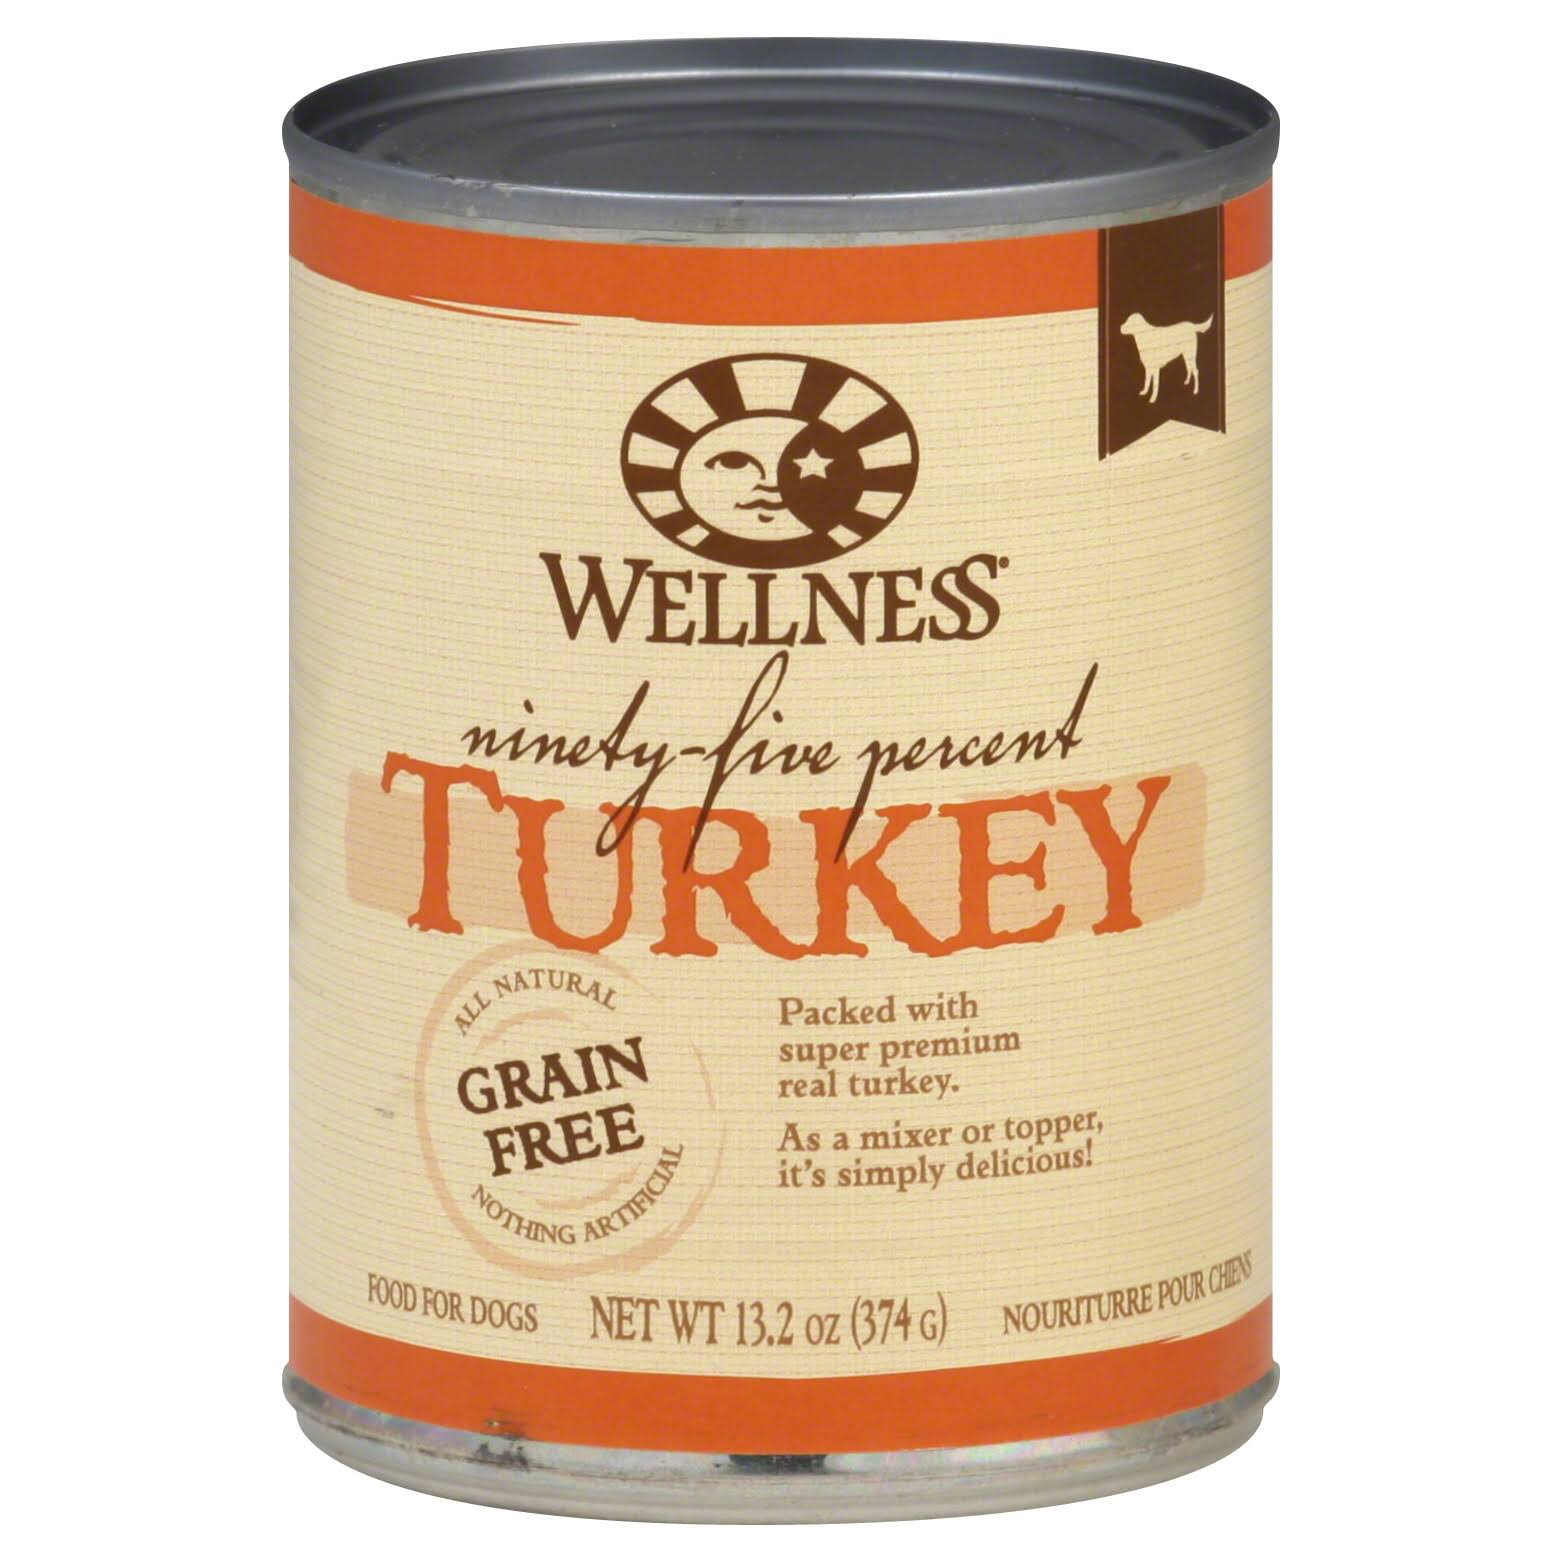 Wellness Dog Food - Turkey, 374g